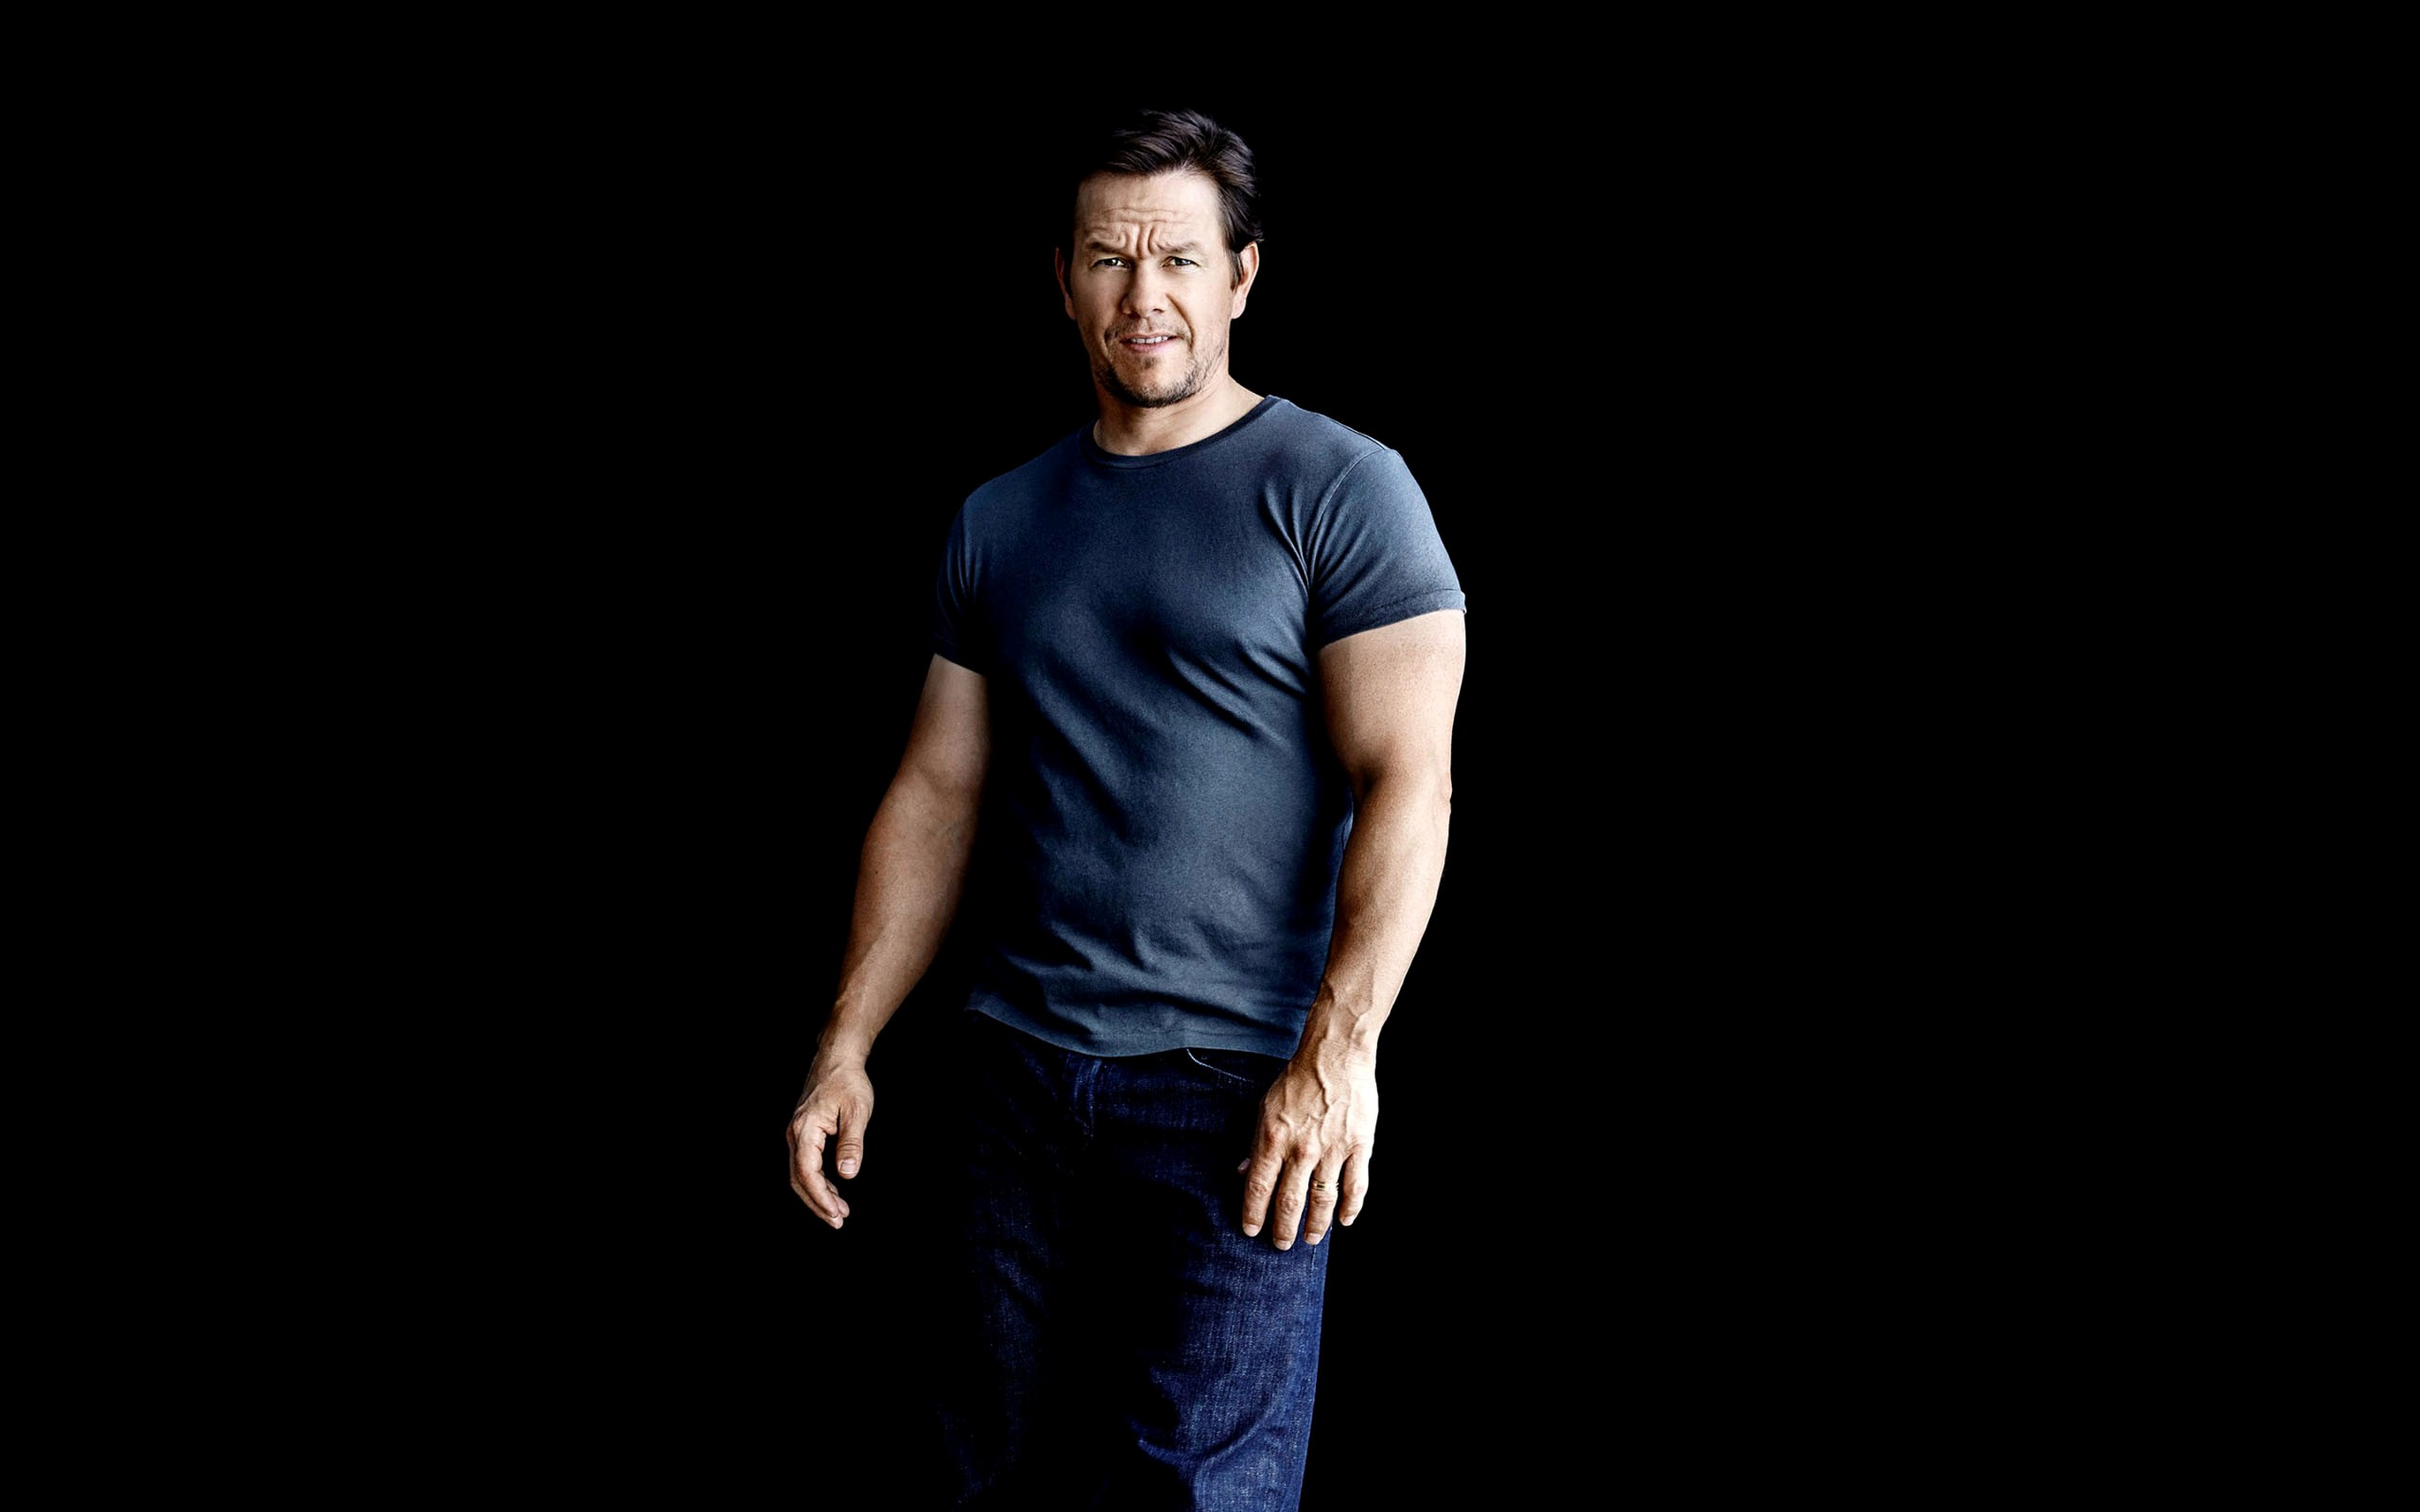 Mark Wahlberg Photoshoot HD Wallpapers 2560x1600